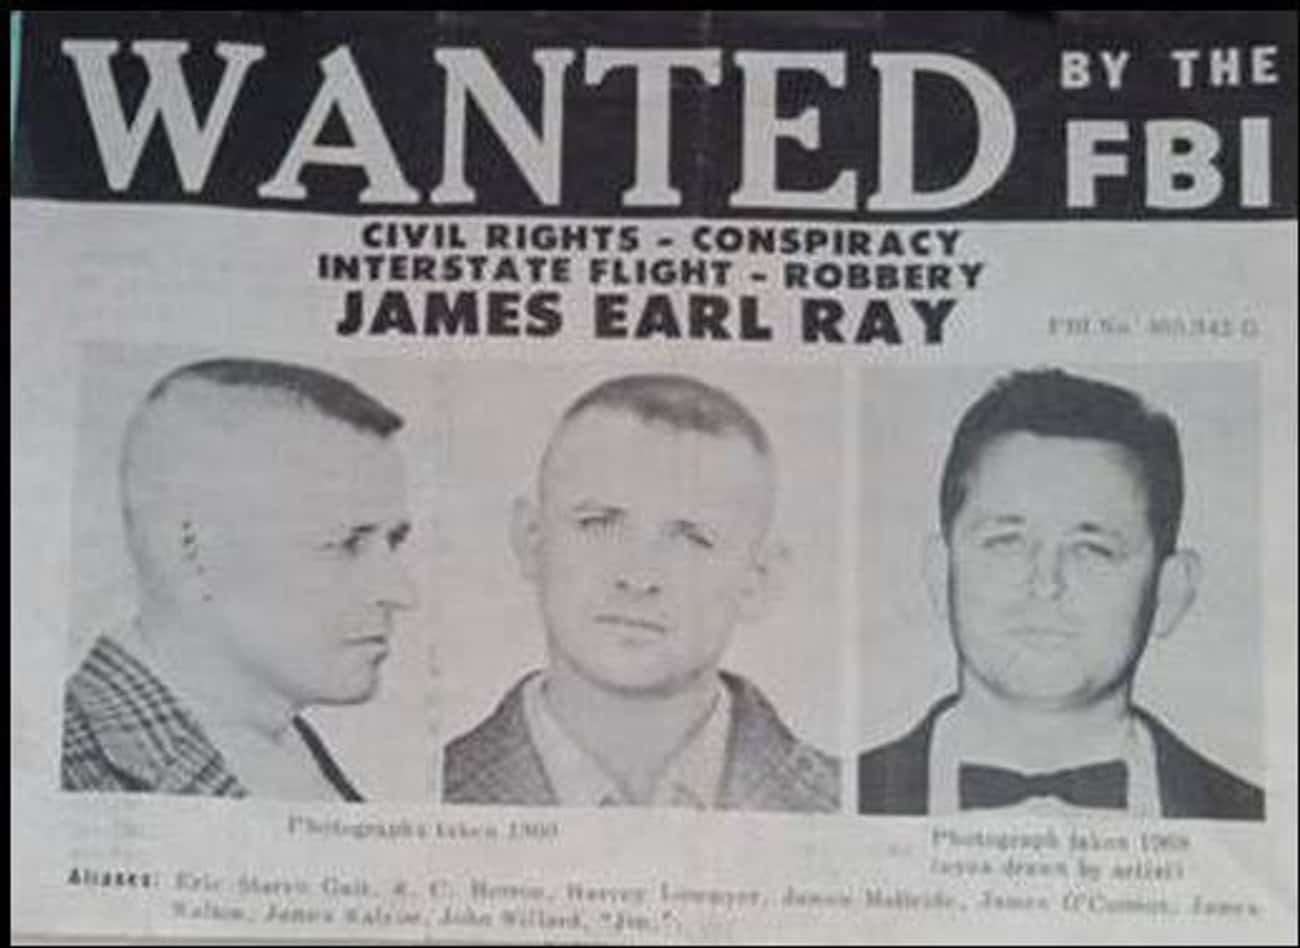 James Earl Ray Fled The Countr is listed (or ranked) 2 on the list 14 Events That Happened Immediately After Martin Luther King Jr.'s Assassination